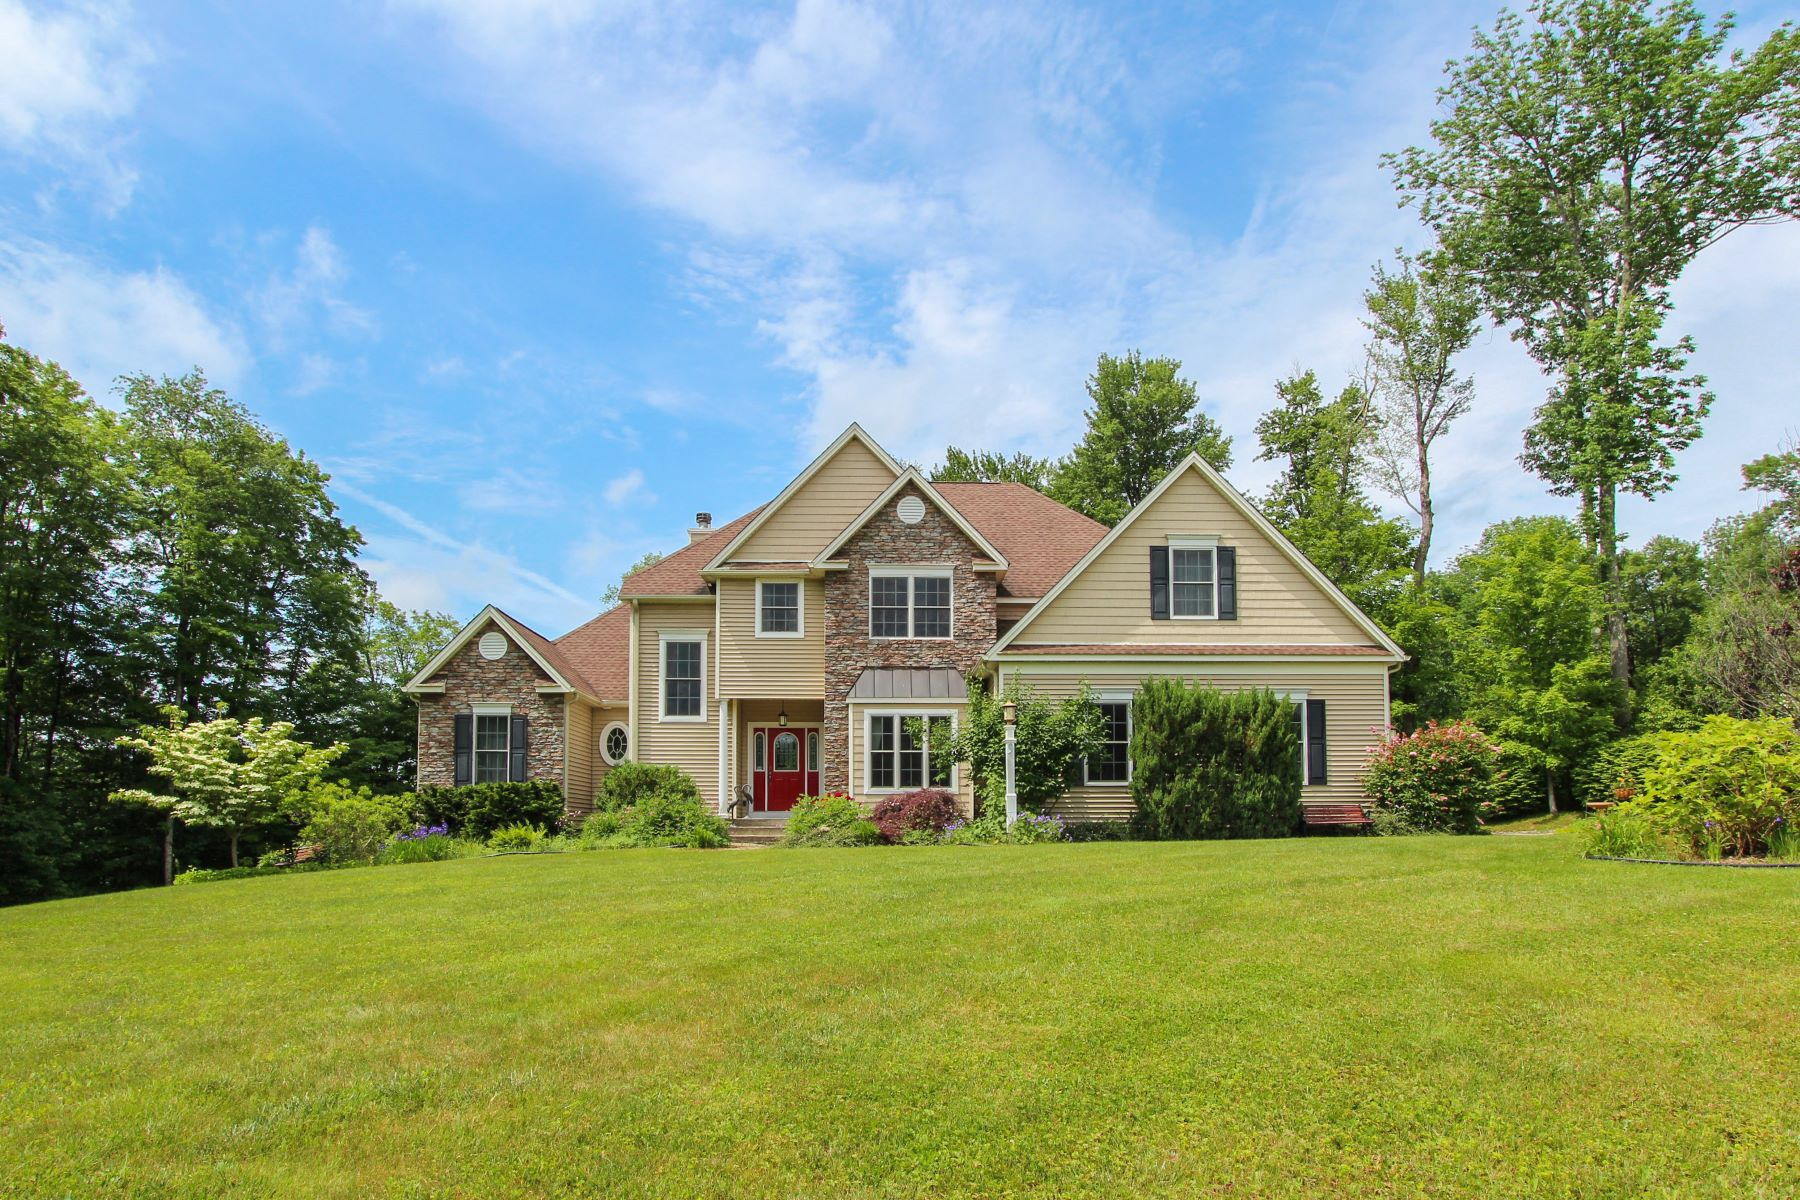 Single Family Home for Sale at Timberlake Colonial with Seasonal Views! 9 Falcon Ridge Rd Torrington, Connecticut 06790 United States